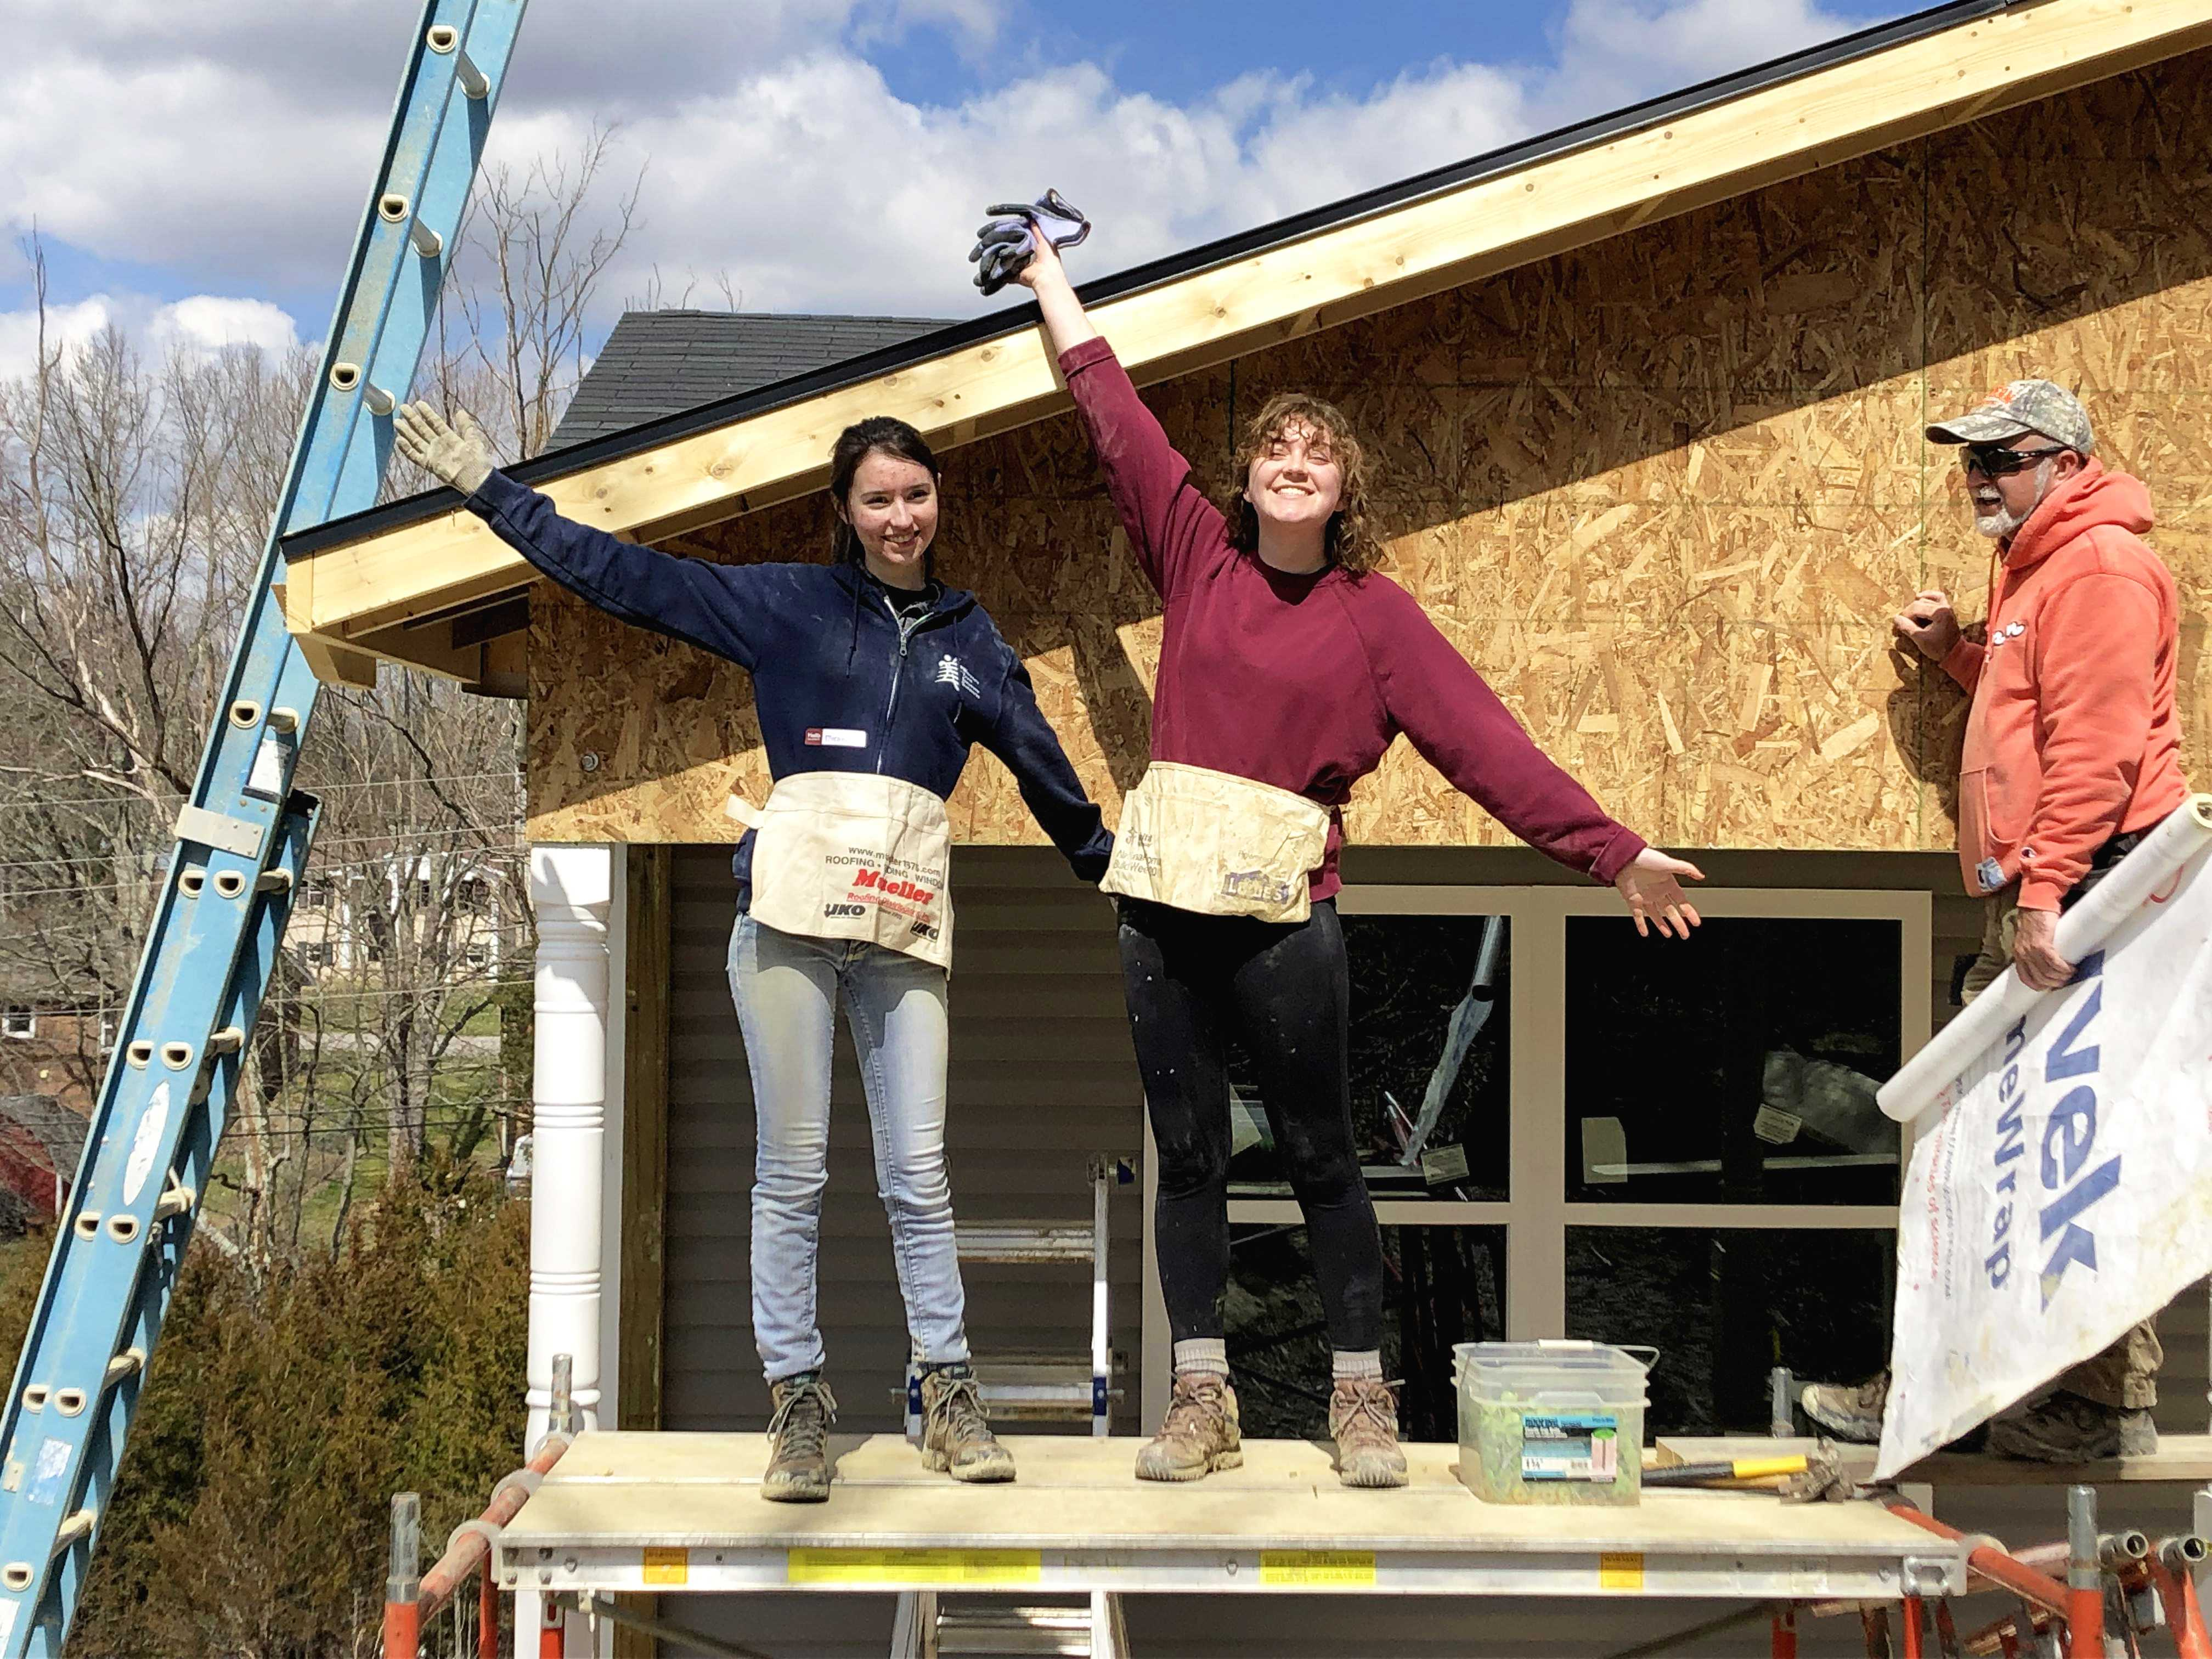 Miranda Moulis '22, Emily McPhillips '19 on a scaffold at the Habitat for Humanity build. Photo by Malcolm Cooke '21.